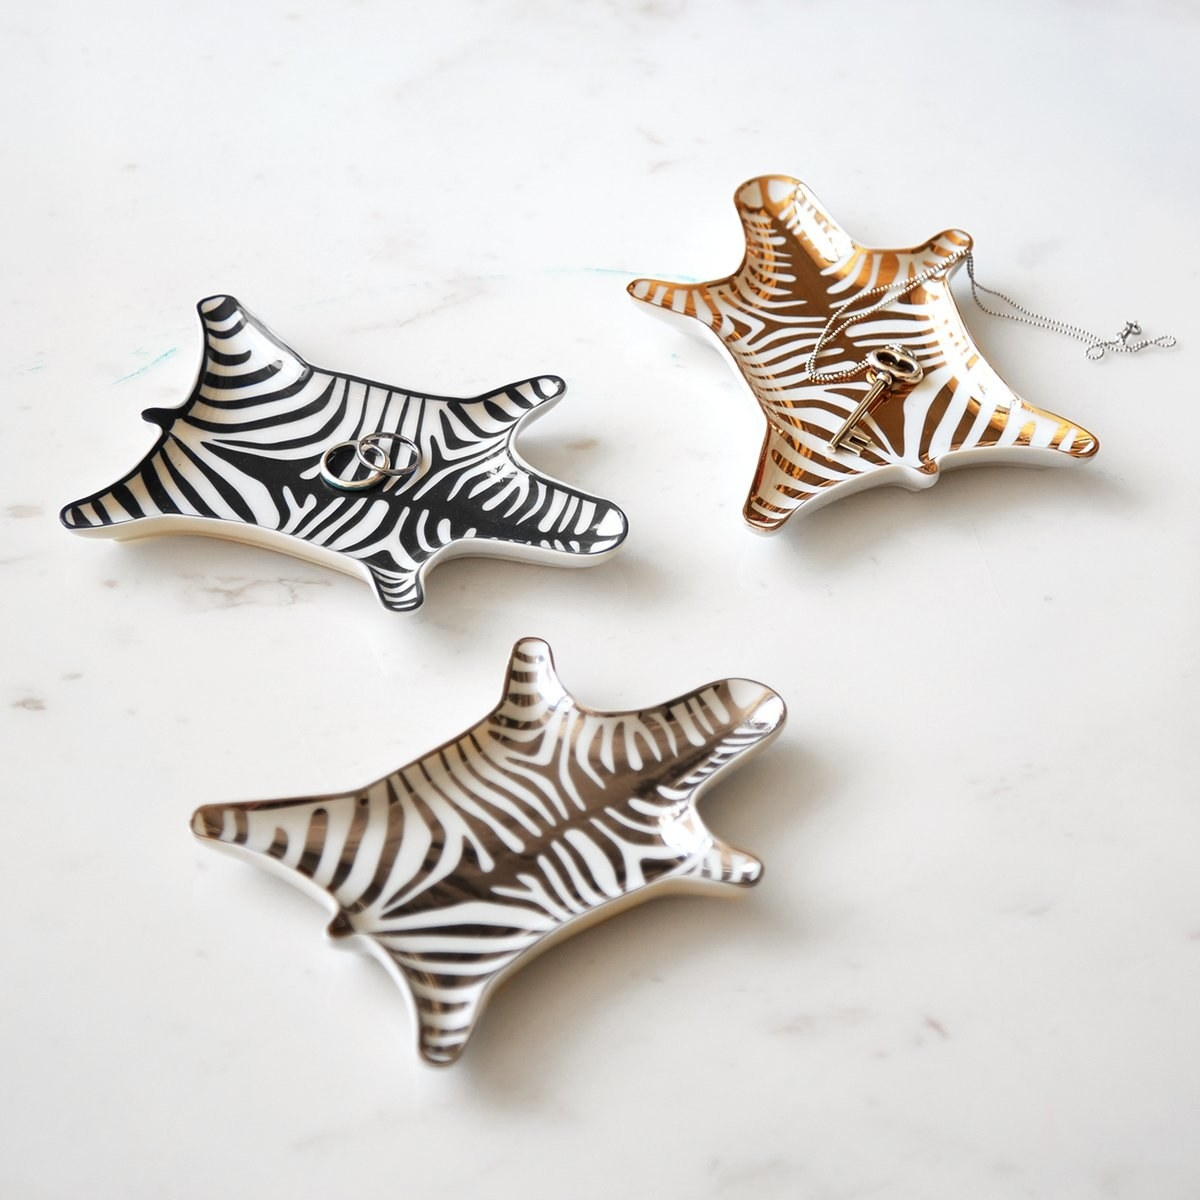 Three zebra-shaped trinket dishes in various colors